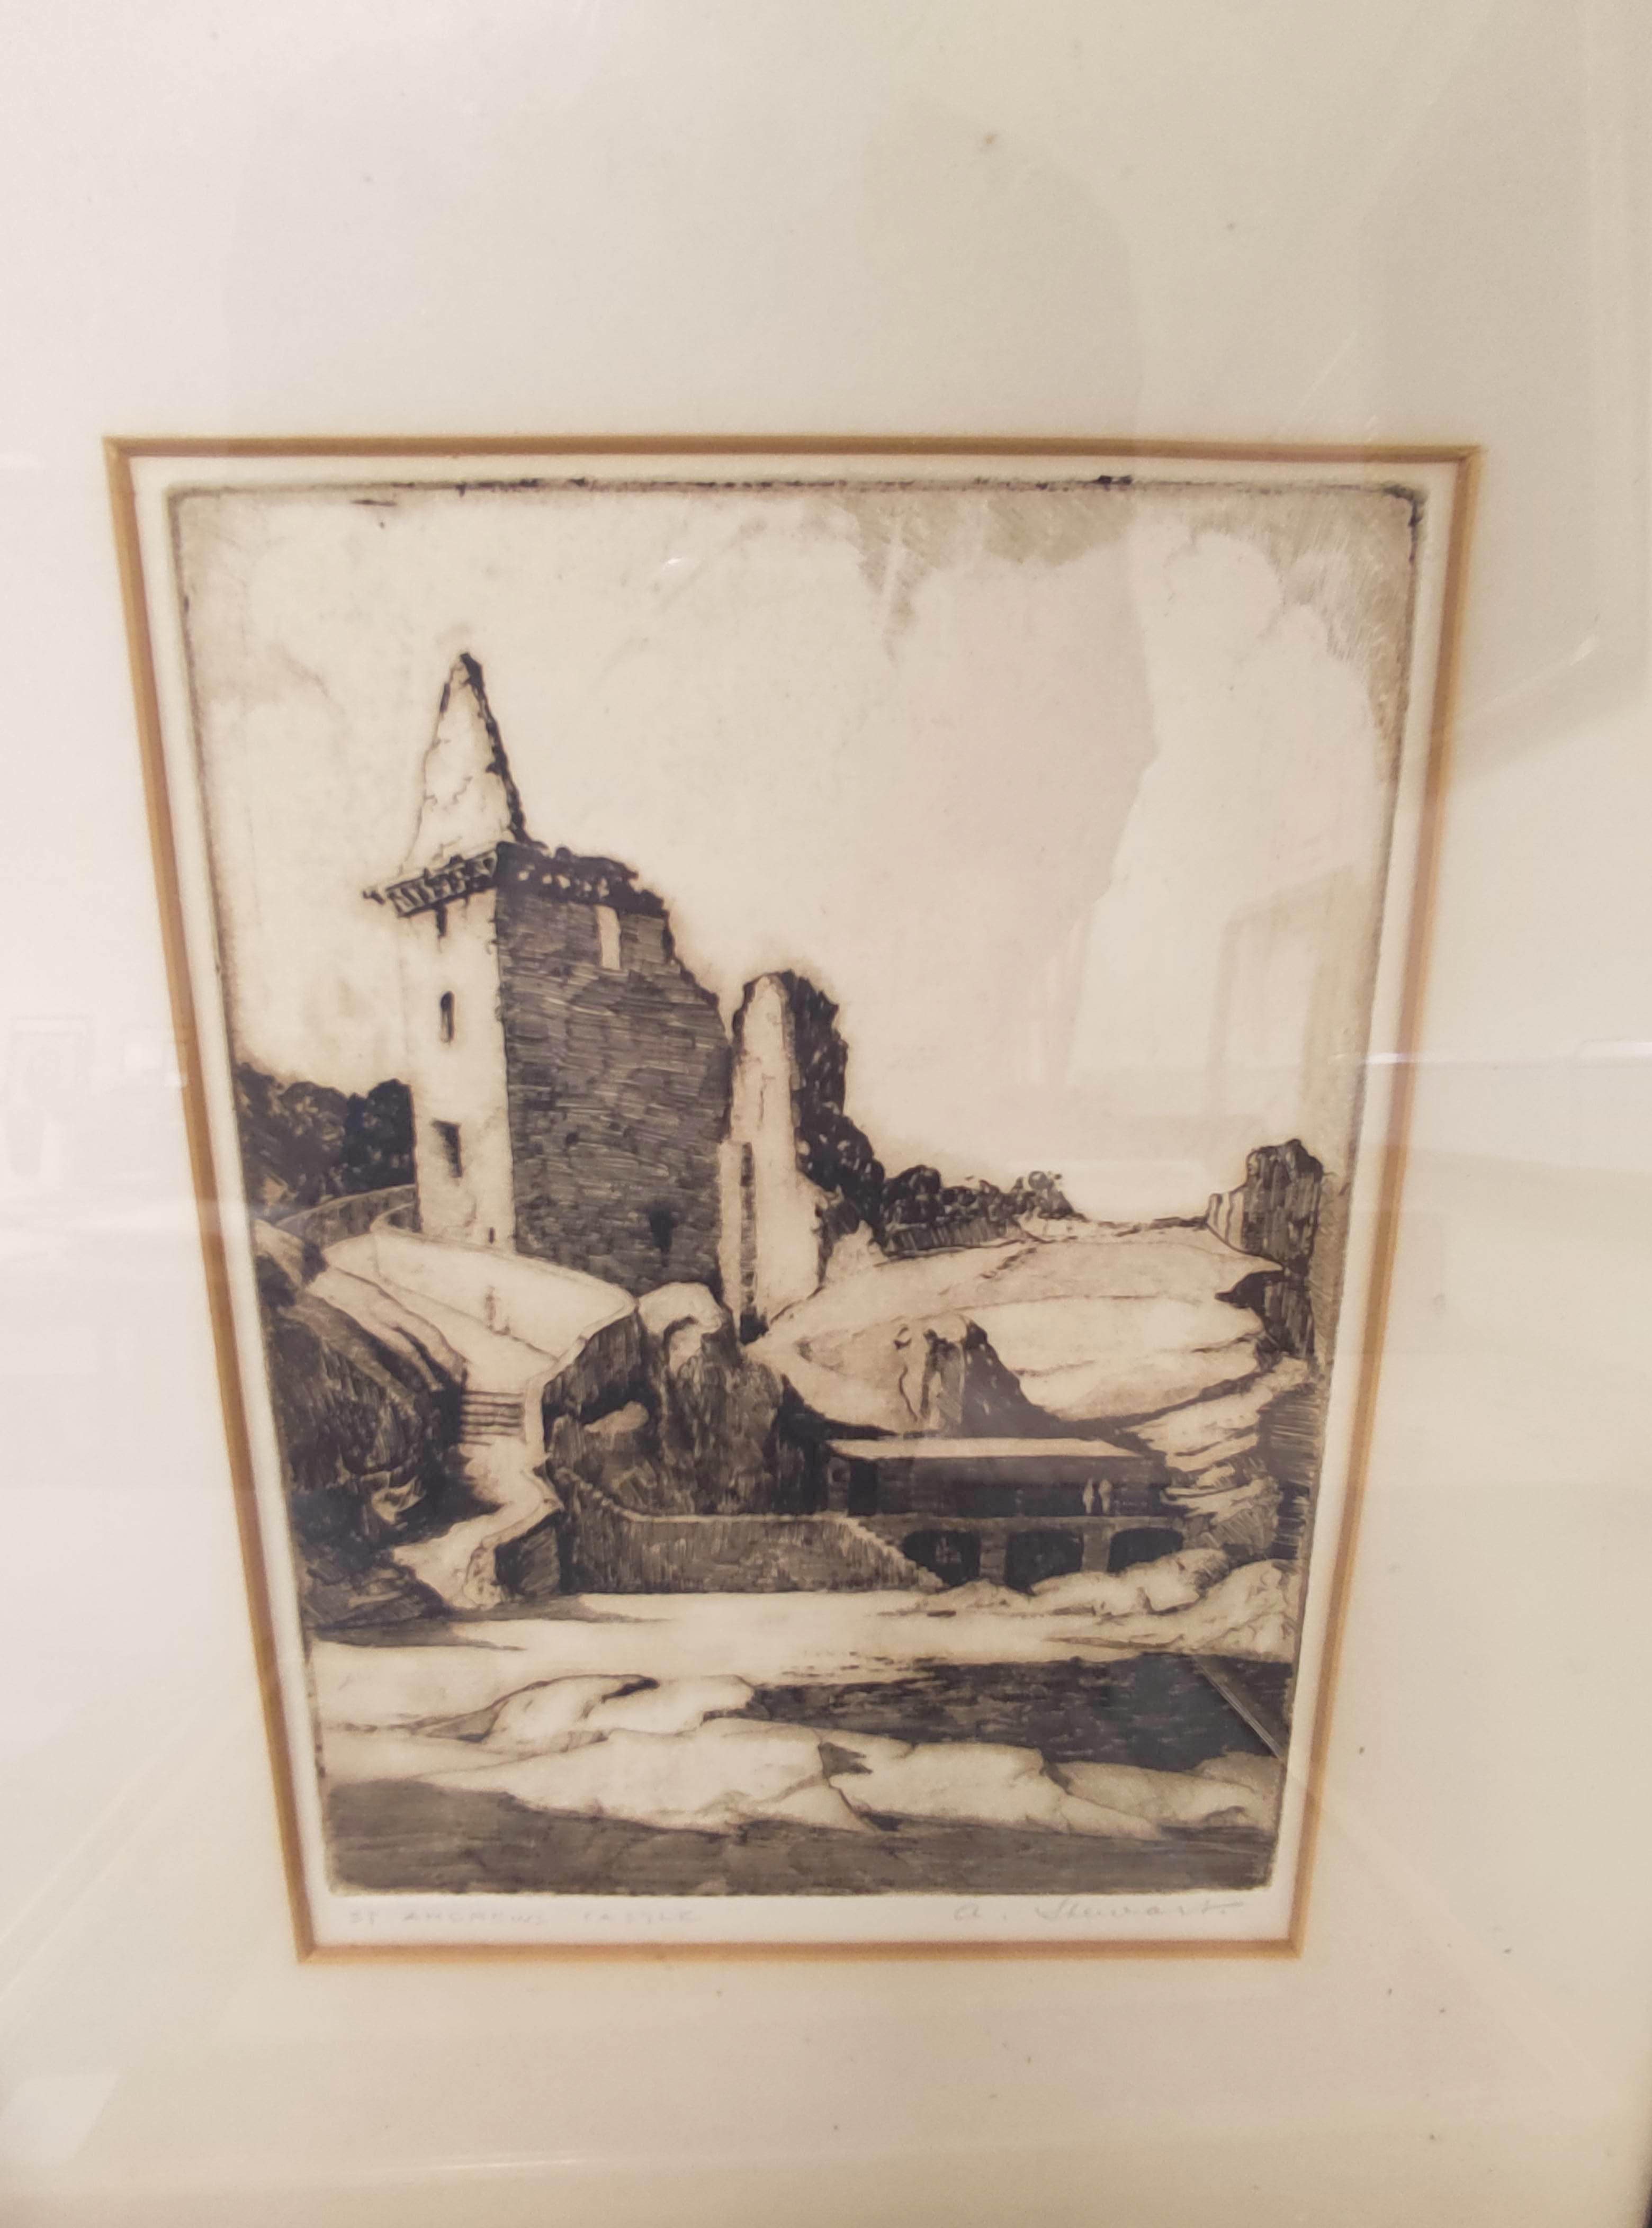 JEAN THOMAS.Bhasteir Tooth, pencil signed etching 2/60; also 5 other engravings & etchings. (6). - Image 2 of 5